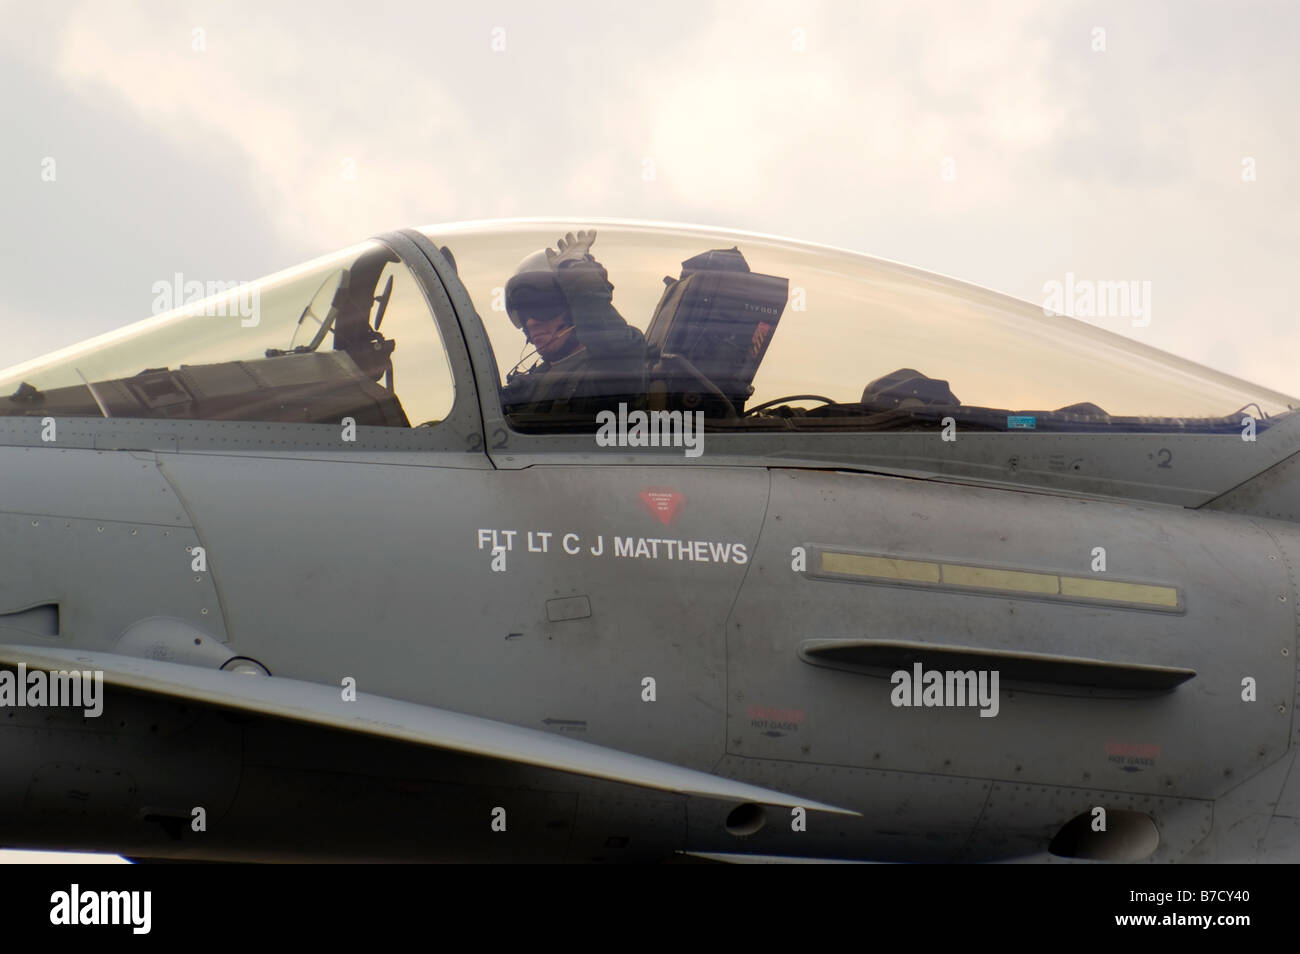 Close up of the cockpit and pilot of a Eurofighter Typhoon military jet fighter plane at Biggin Hill Airshow Stock Photo